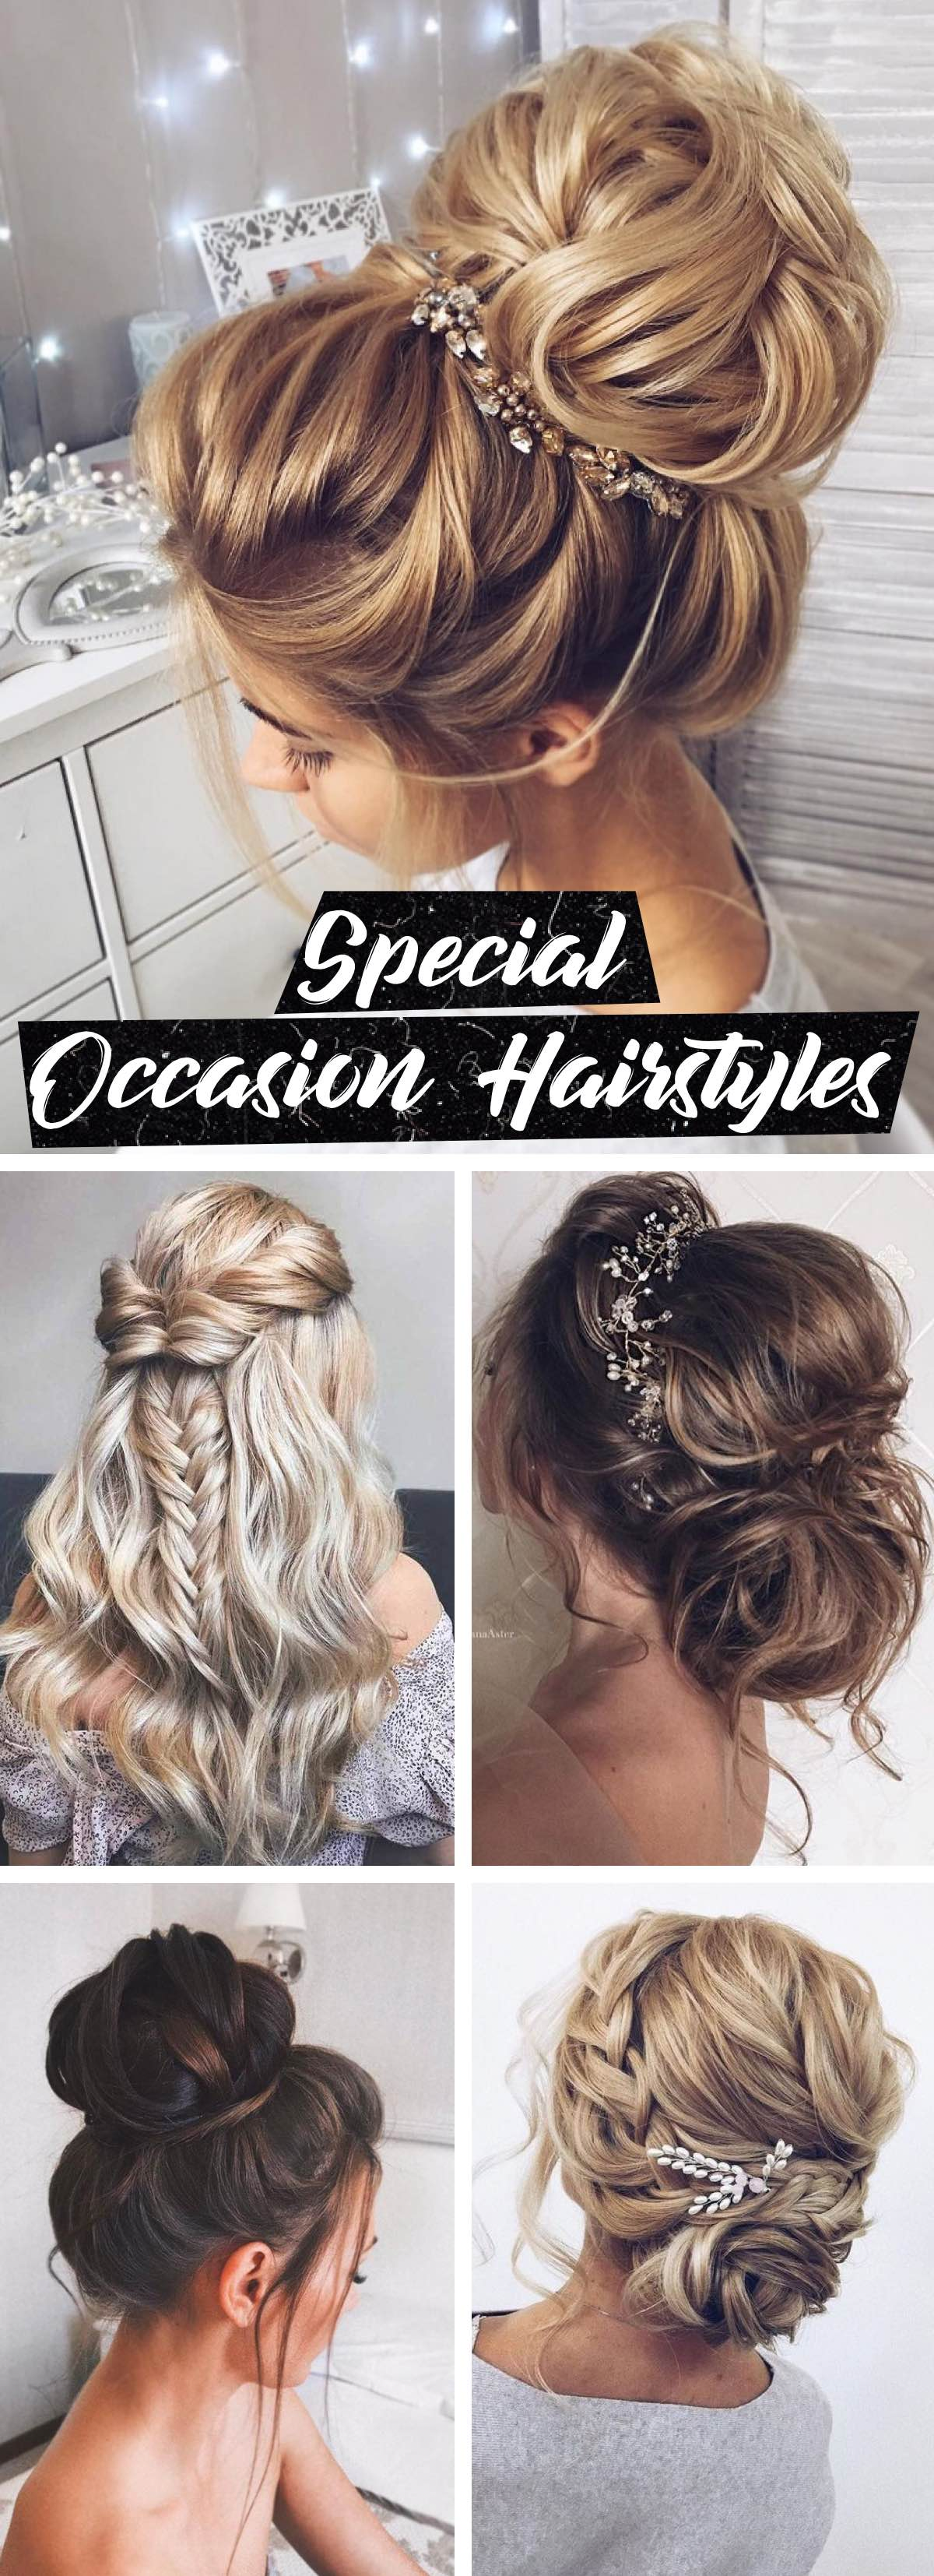 18 Special Occasion Hairstyles That Will Make You Enchant the Big Day!